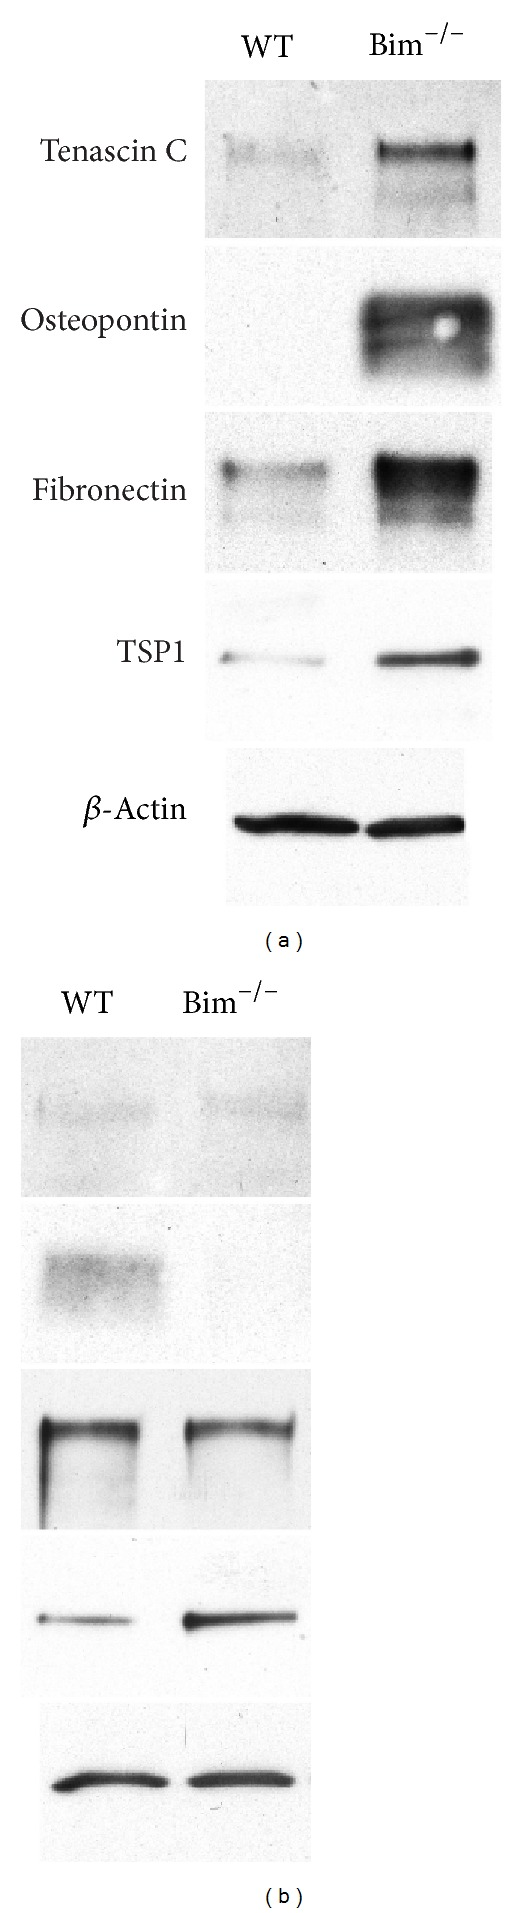 Altered expression of ECM proteins in Bim −/− retinal cells. Wild-type and Bim −/− retinal endothelial cells (panel (a)) and pericytes (panel (b)) were grown for 2 days in serum-free medium. The medium was harvested, clarified, and Western-blotted for extracellular matrix proteins as noted. The expression of β -actin from total cell lysates was used as a loading control. These experiments were repeated twice with similar results.